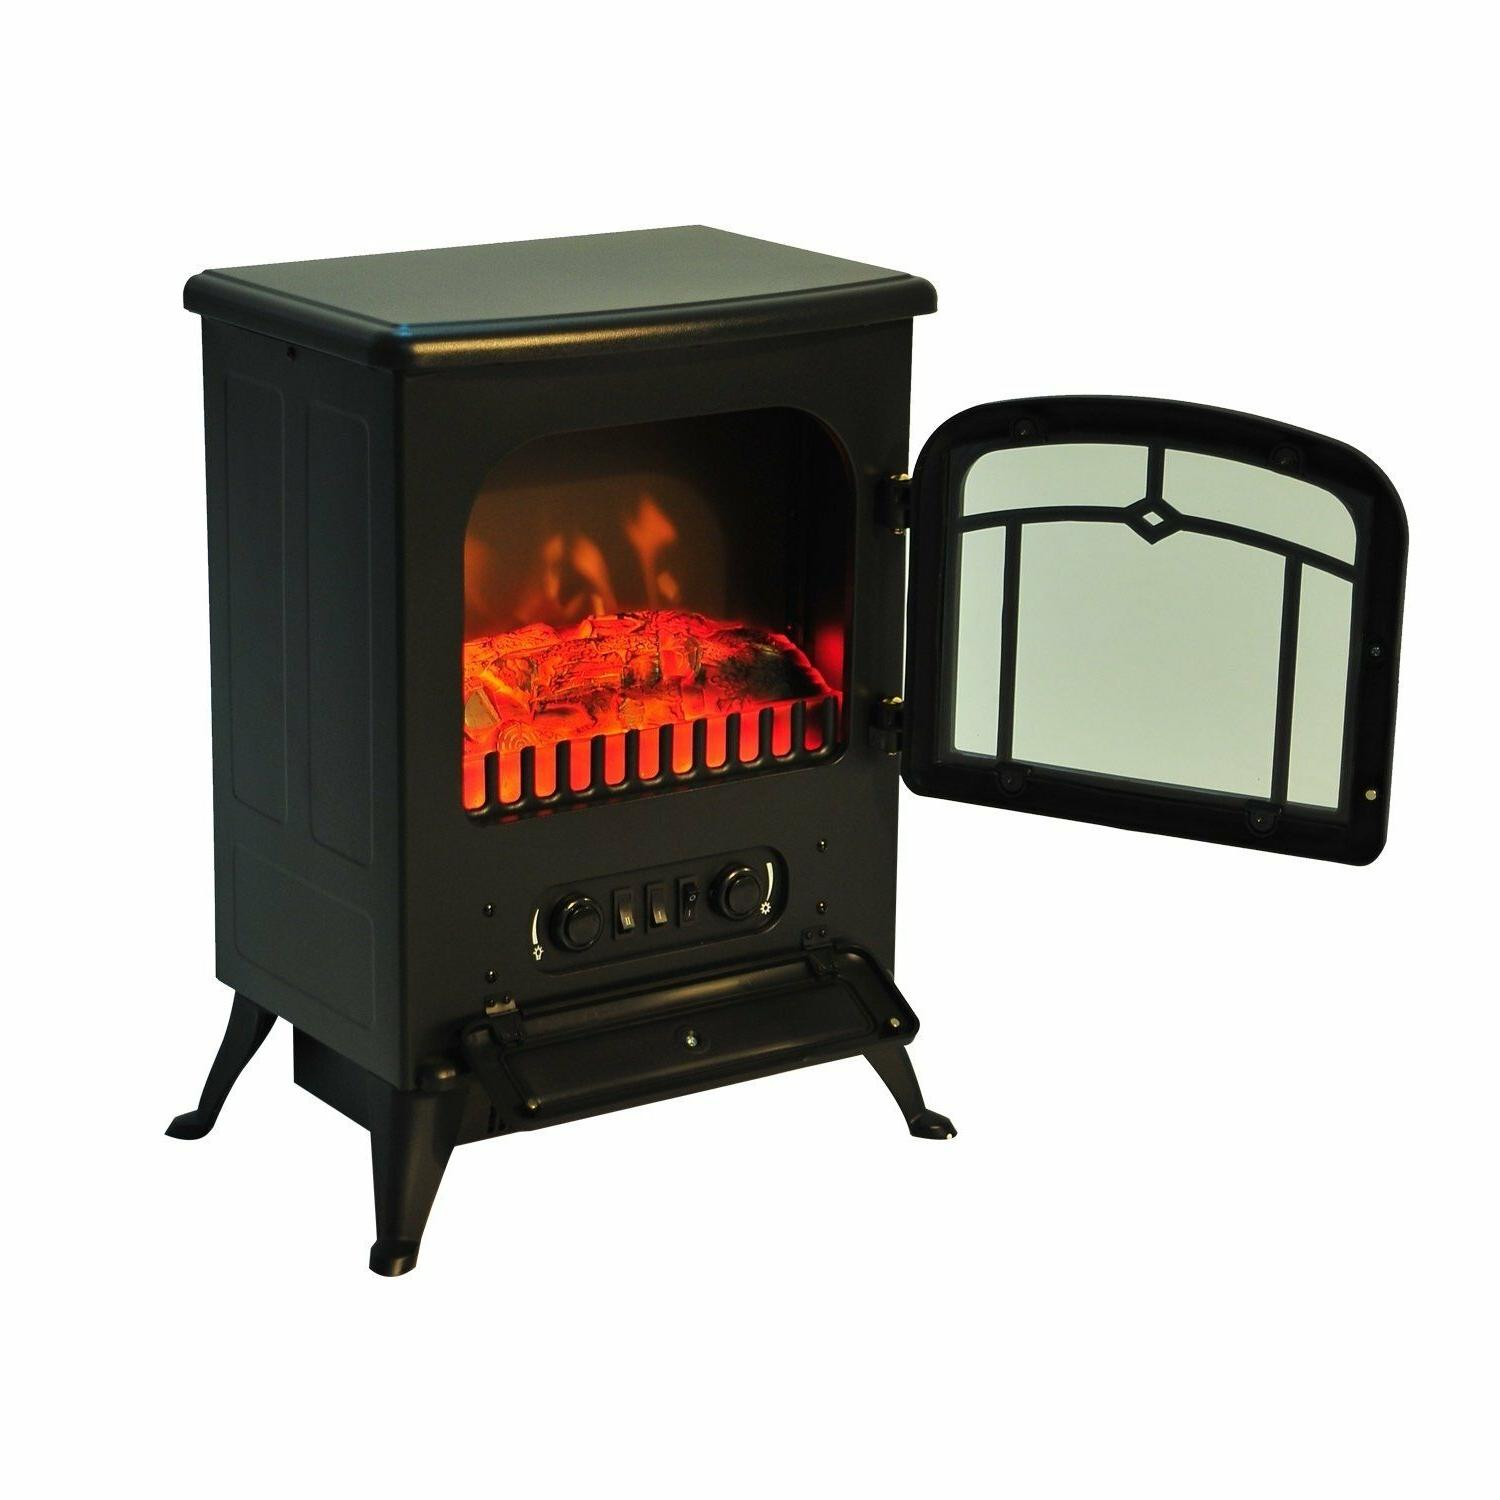 Indoor Fireplace Space Heater 1500W Adjustable Stove